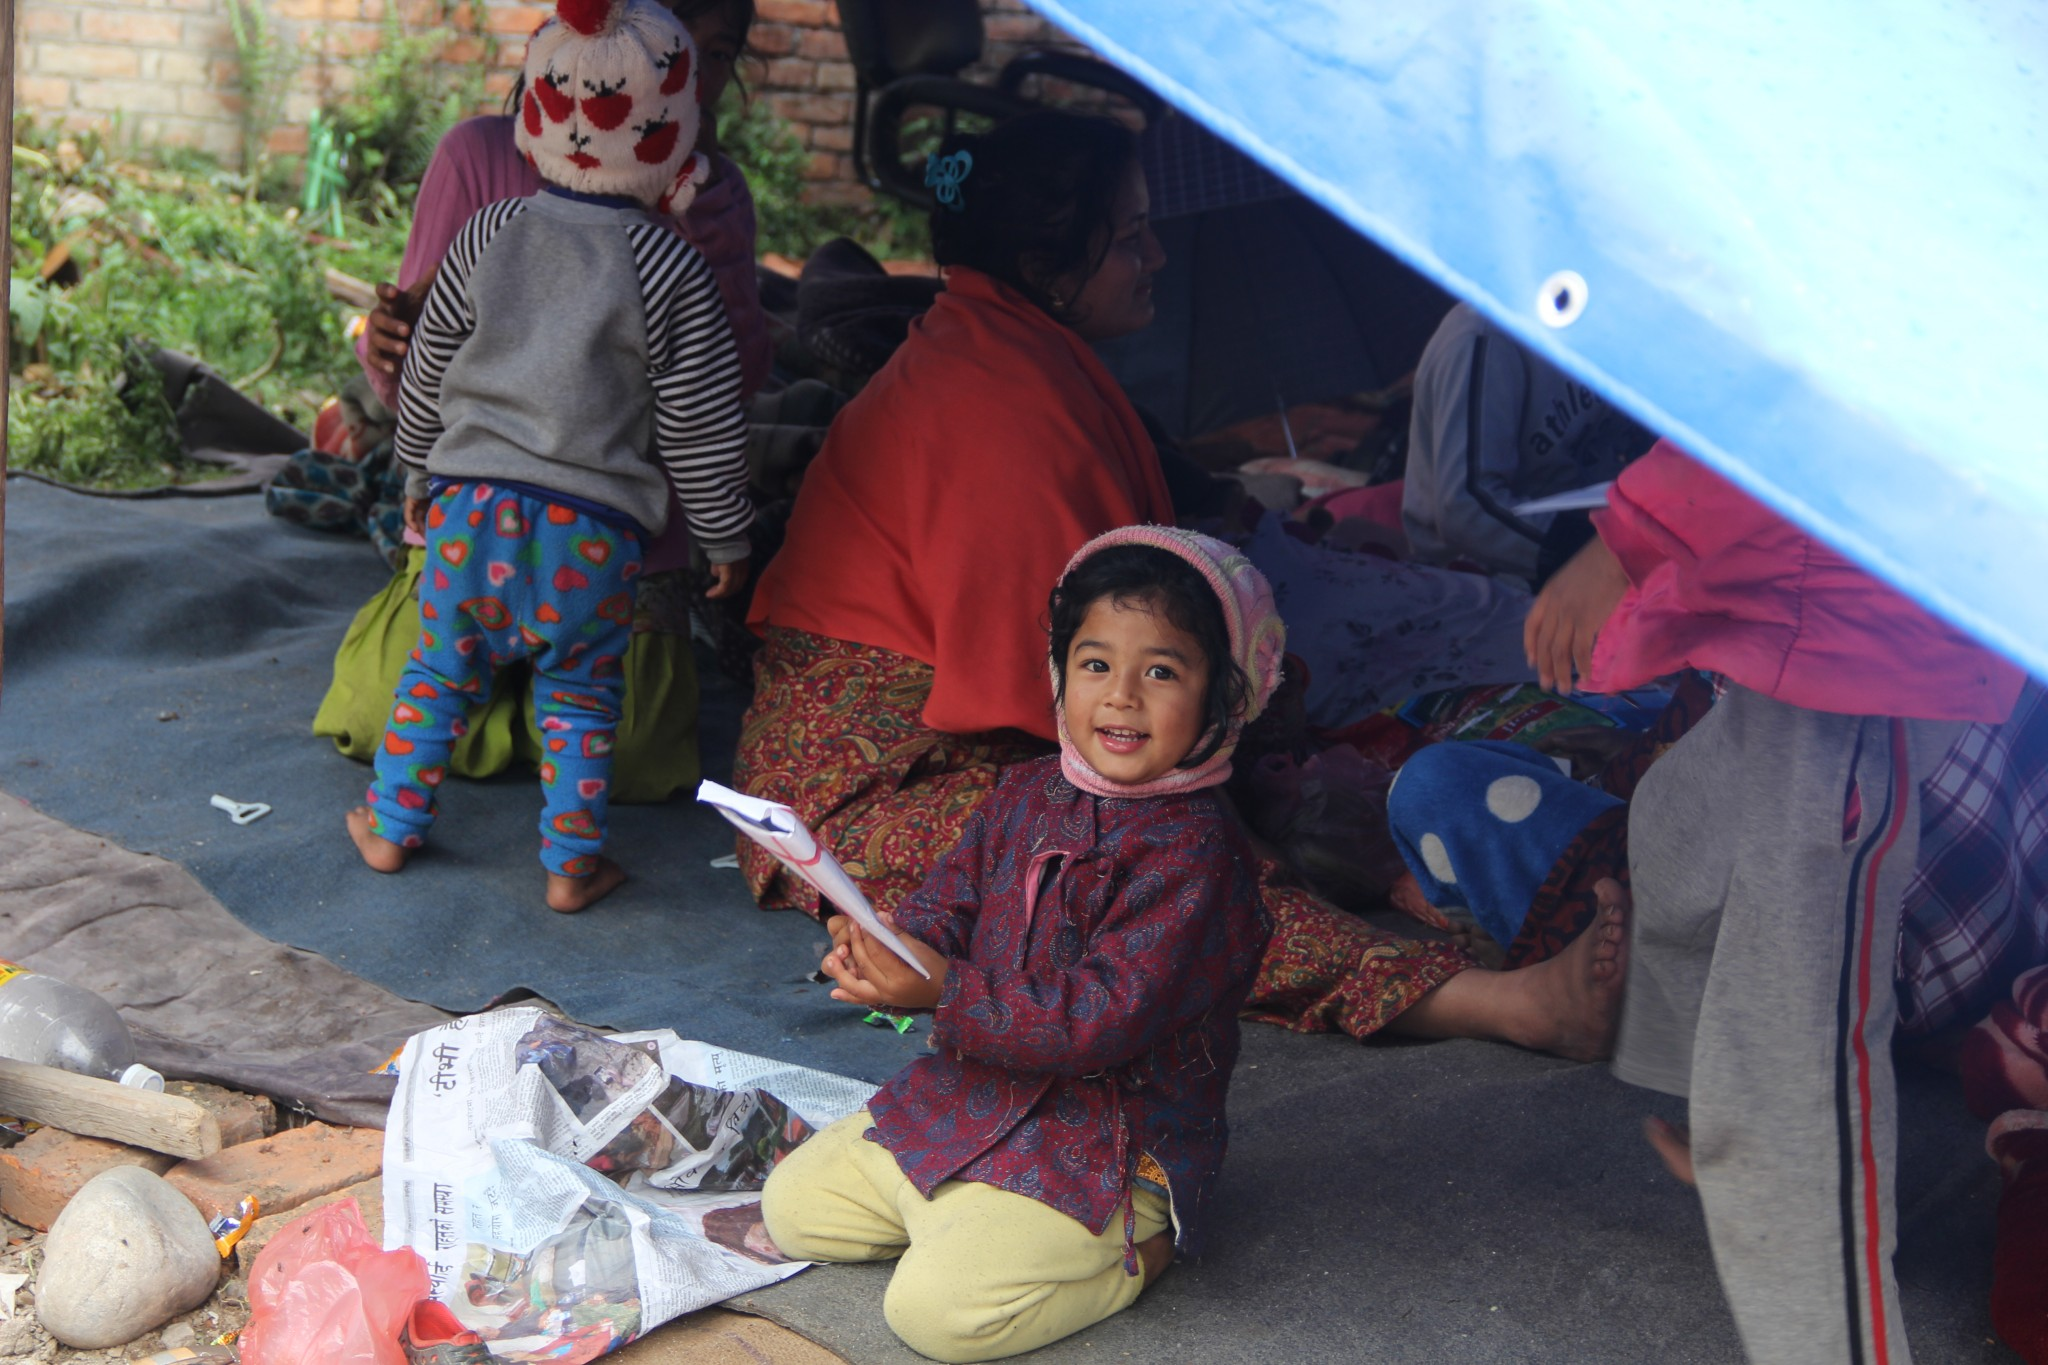 Aid delivered to Nepal as second quake hits